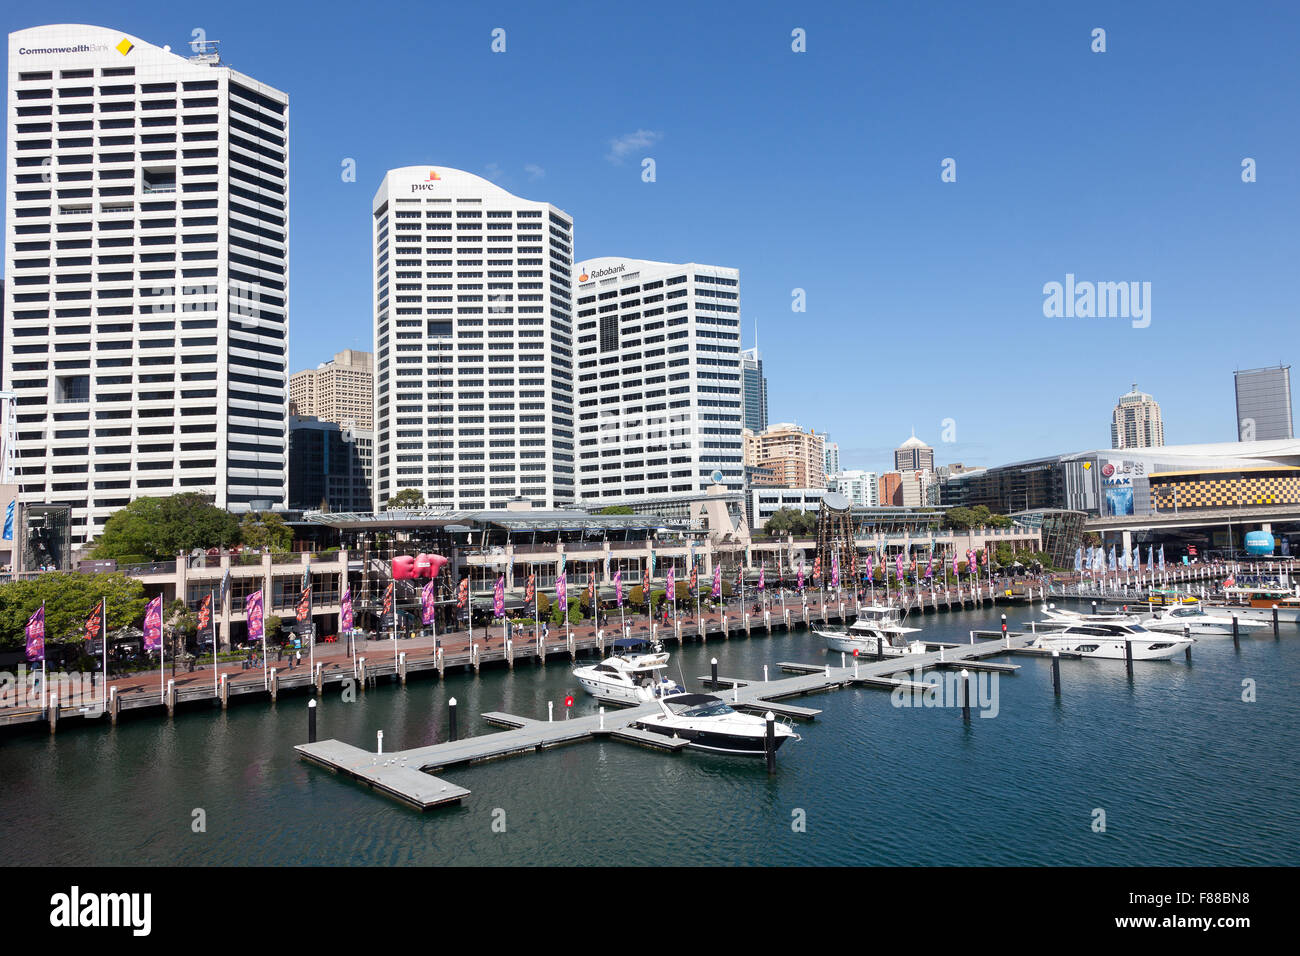 Cockle Bay Wharf, Darling Harbour, Sydney, NSW, Australia - Stock Image